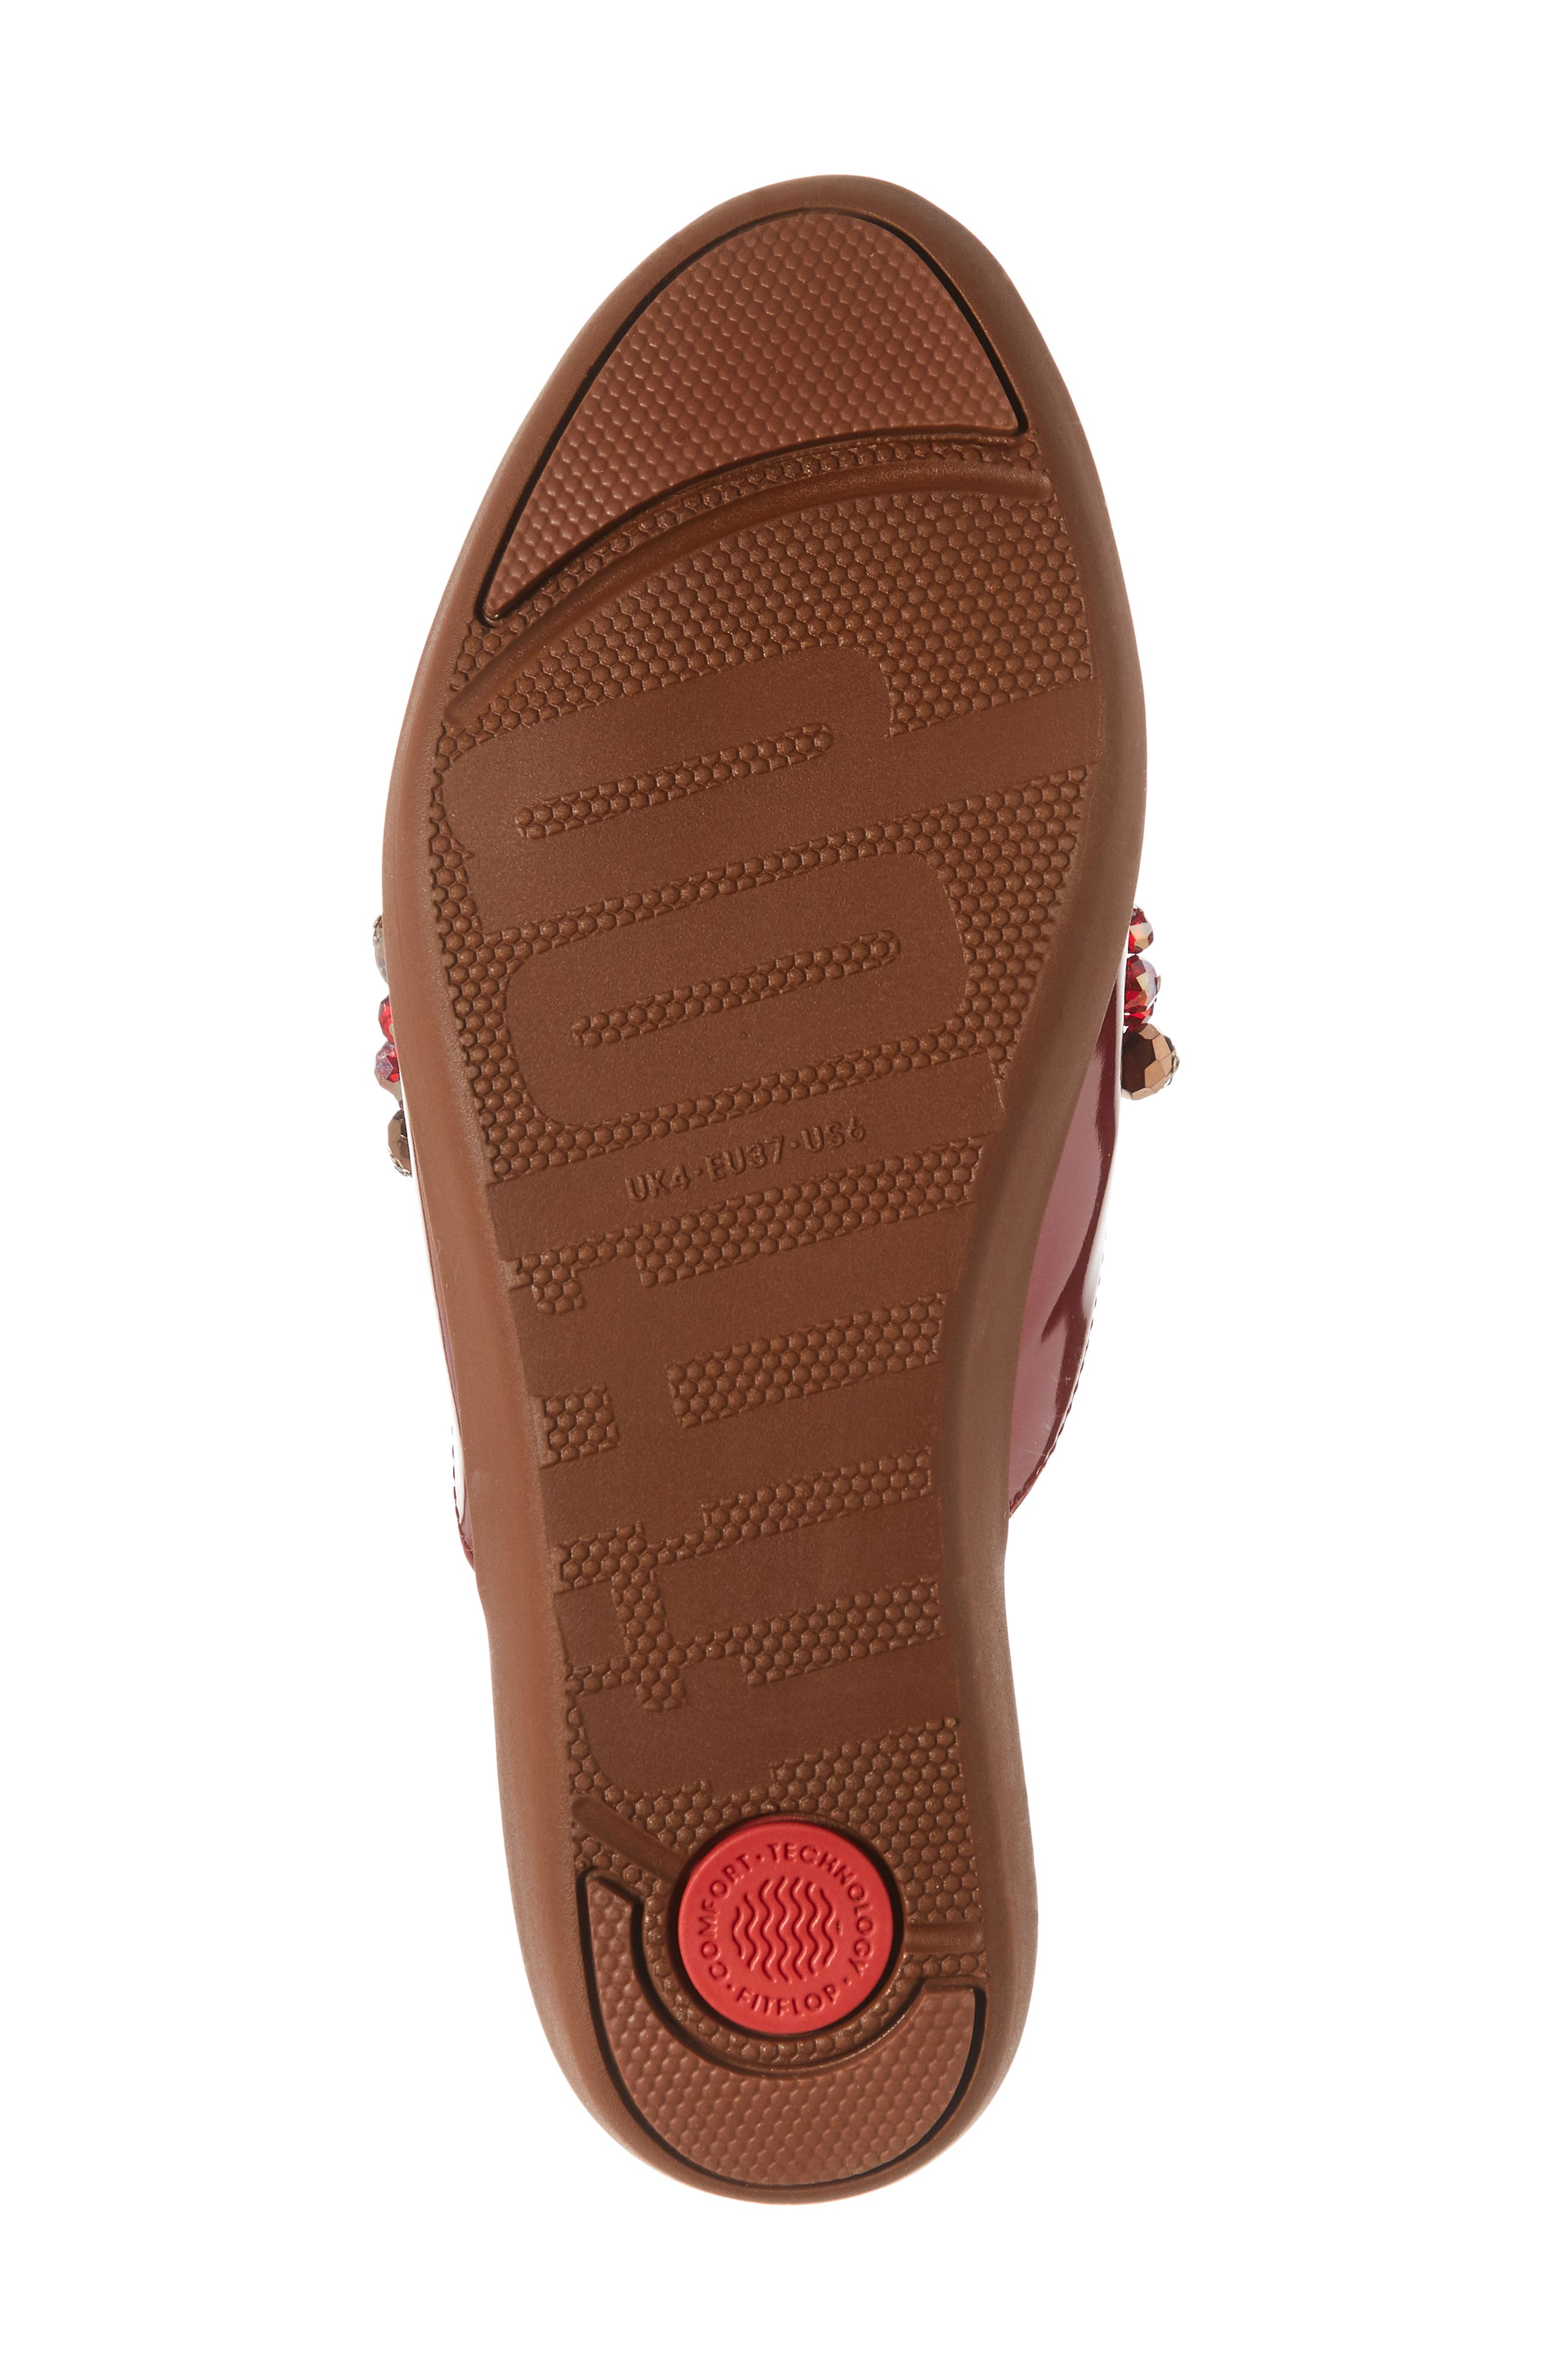 FITFLOP, Serene Beaded Mule, Alternate thumbnail 6, color, FIRE RED PATENT LEATHER